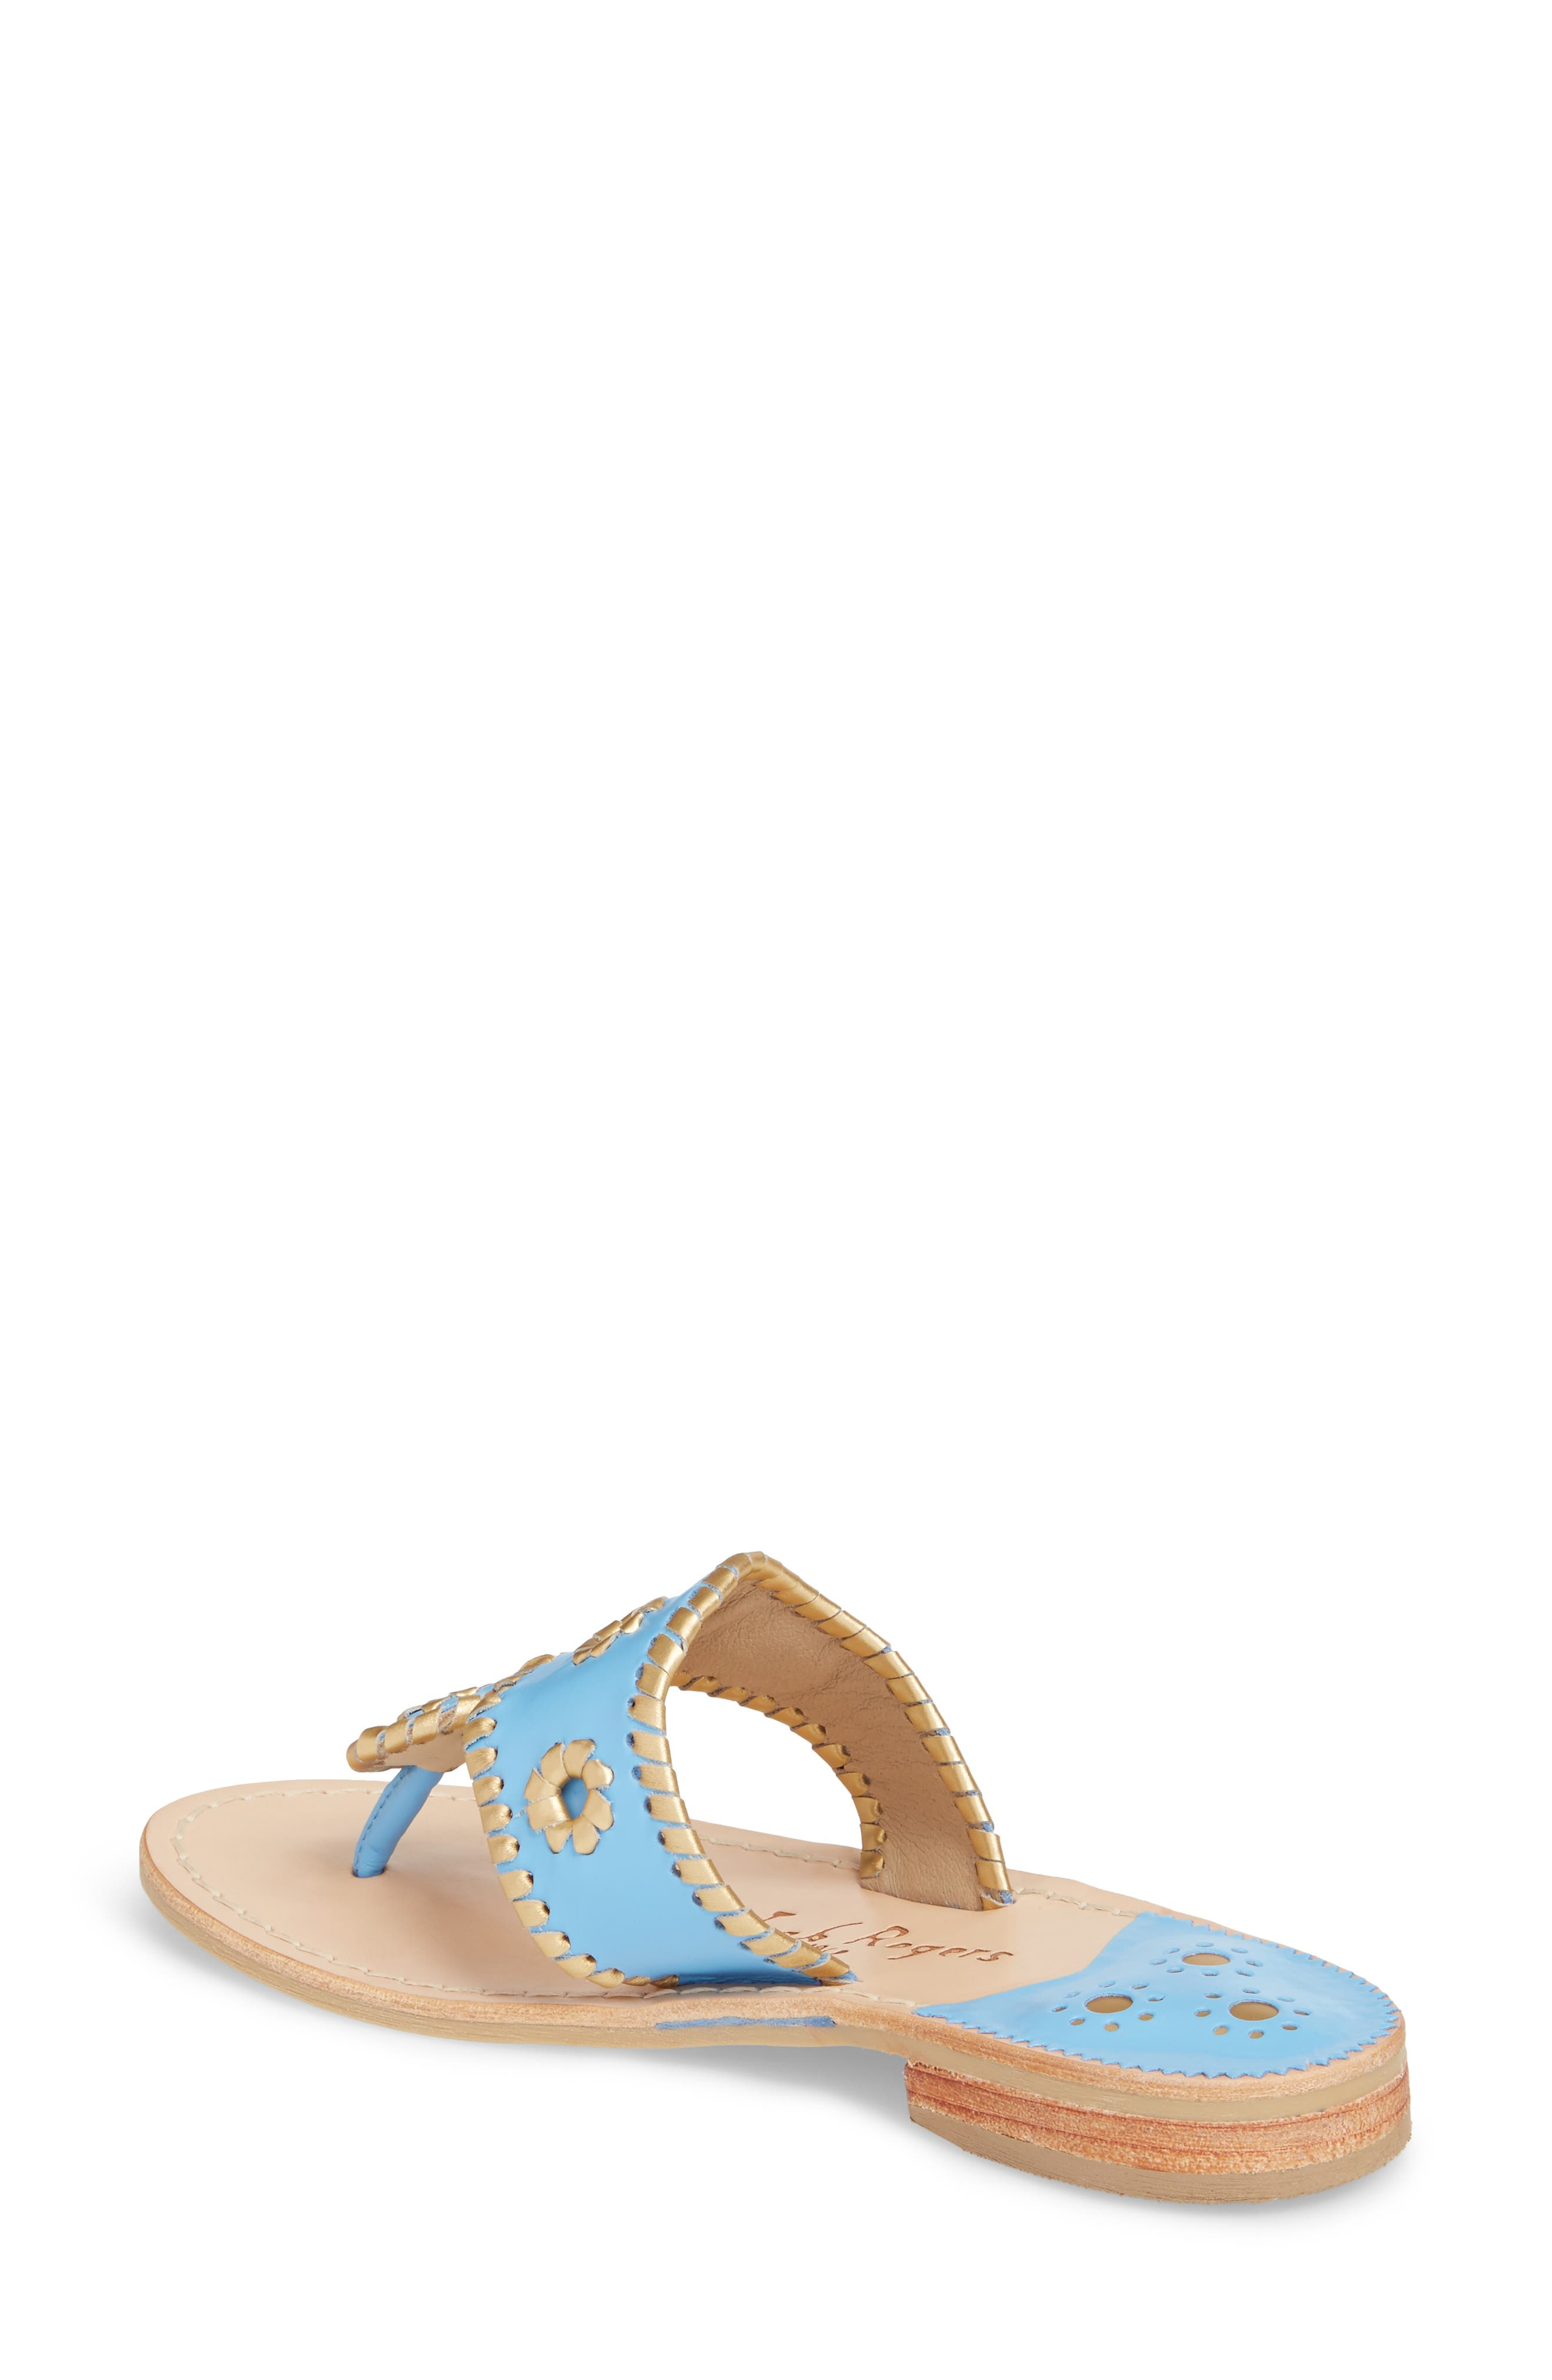 Hollis Flat Sandal,                             Alternate thumbnail 2, color,                             French Blue Leather